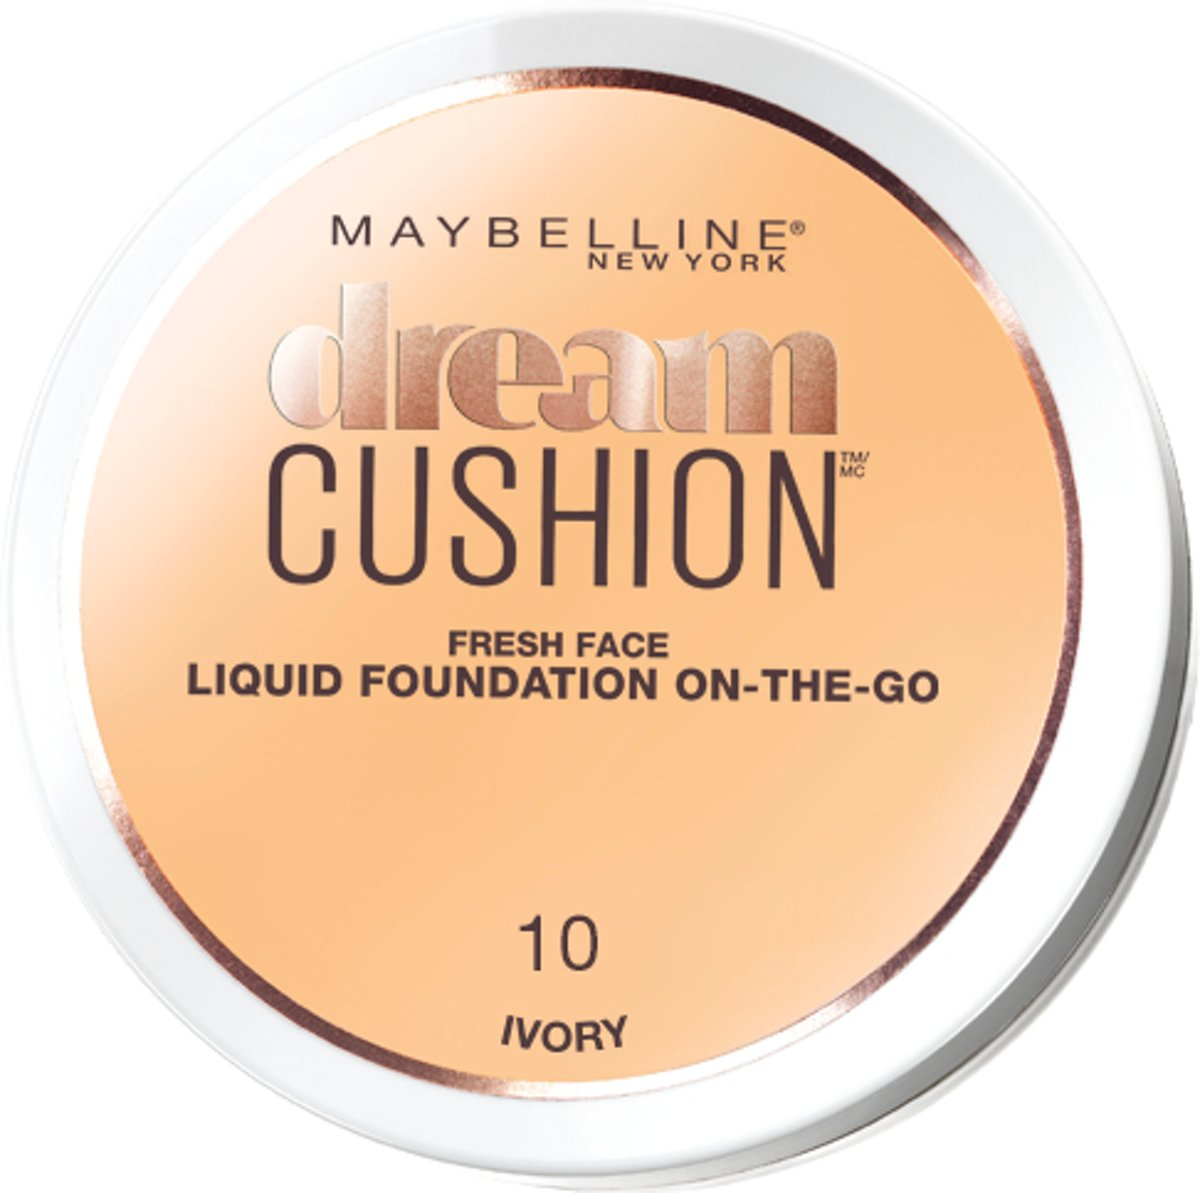 Maybelline Dream Cushion Foundation - 10 Ivory - Foundation